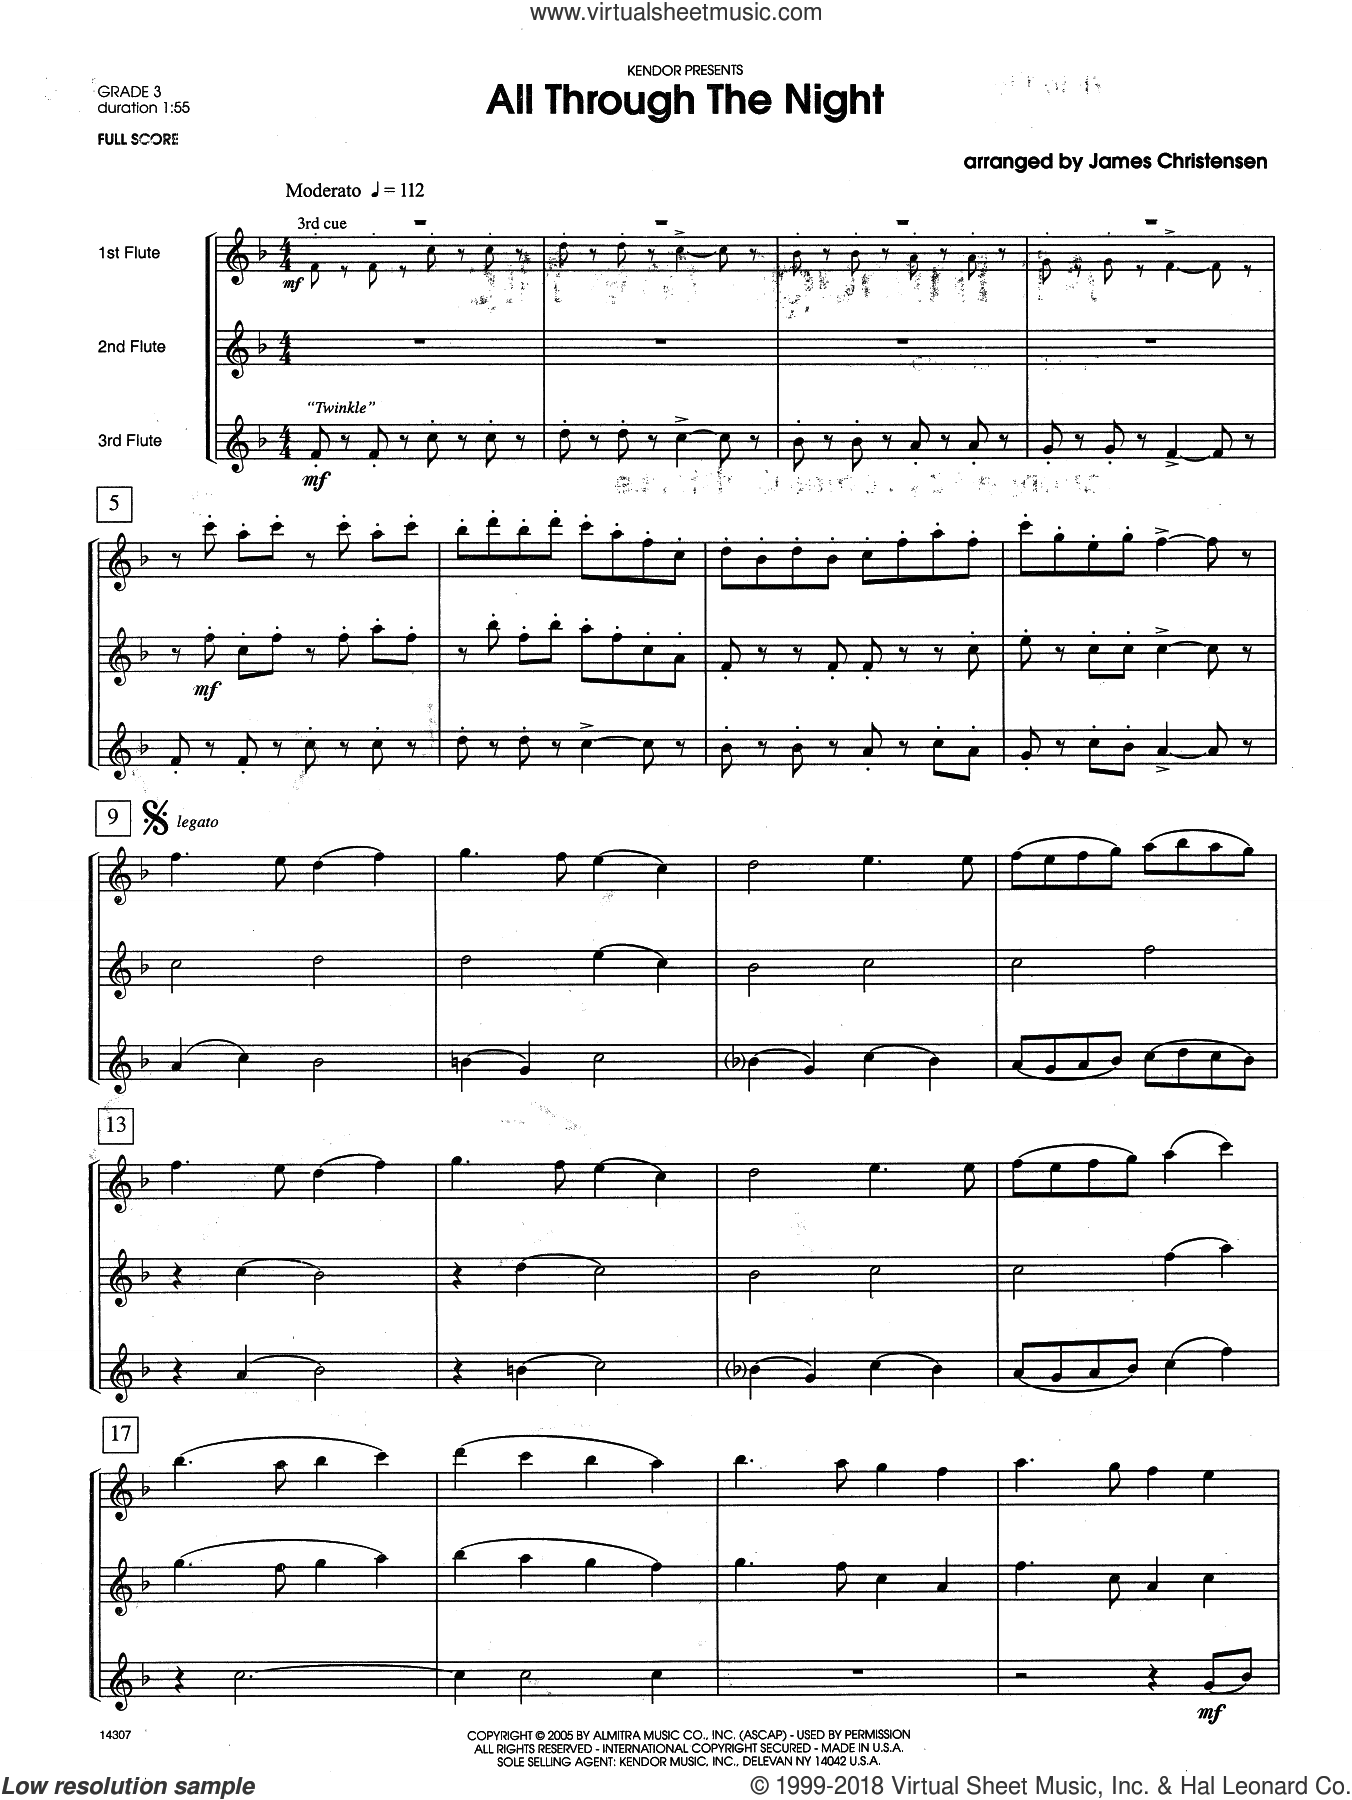 All Through the Night (COMPLETE) sheet music for flute quartet by James Christensen, intermediate skill level